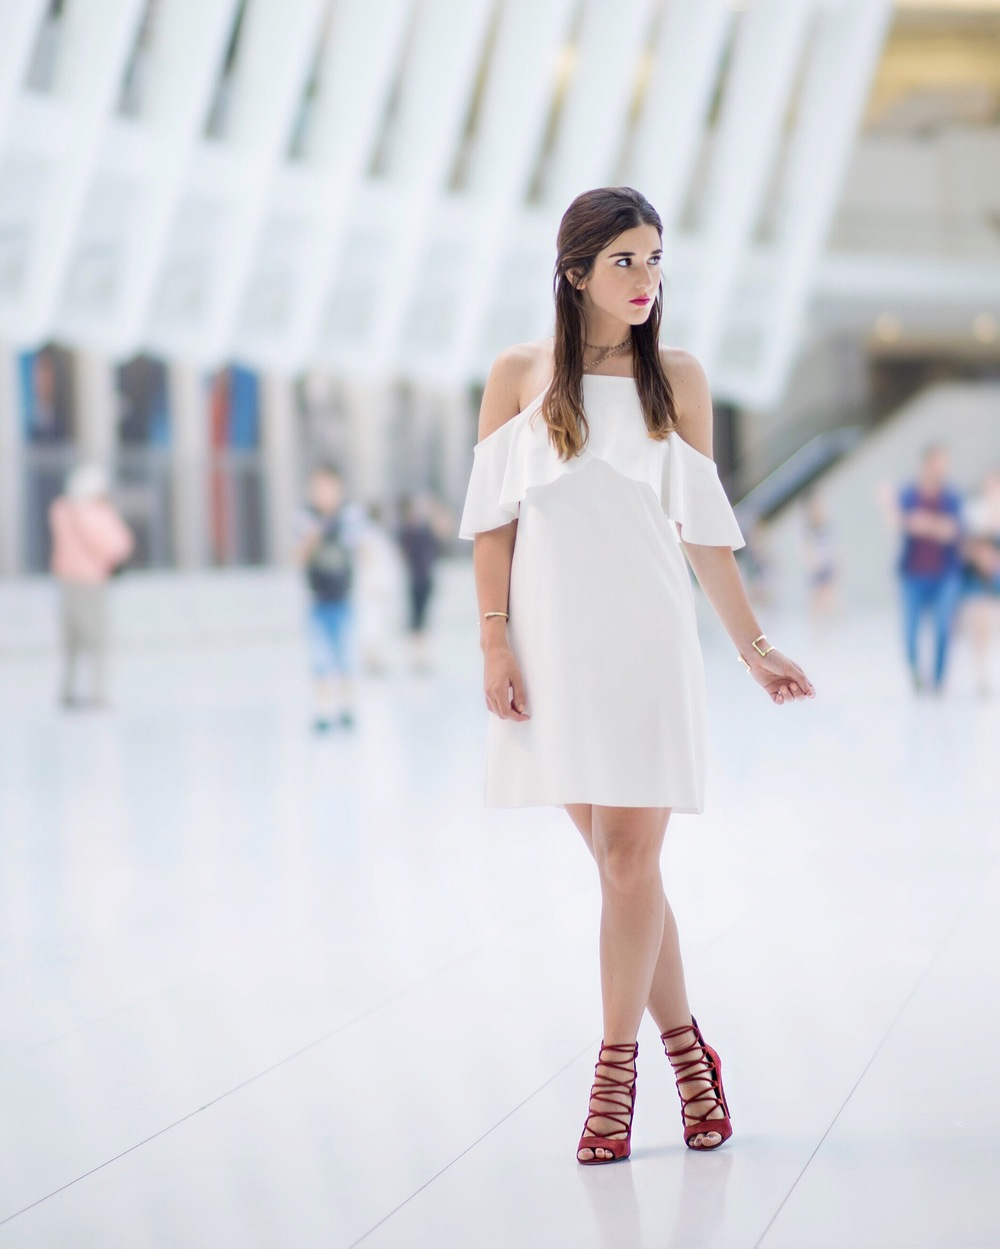 Cold Shoulder White Dress Red Heels Louboutins & Love Fashion Blog Esther Santer NYC Street Style Blogger Outfit OOTD Trendy French Connection Zara Beaded Chokers Jewelry Bloomingdale's Girl Women Shoes Hair Inspo Gold Bracelet Pretty Color Photoshoot.jpg